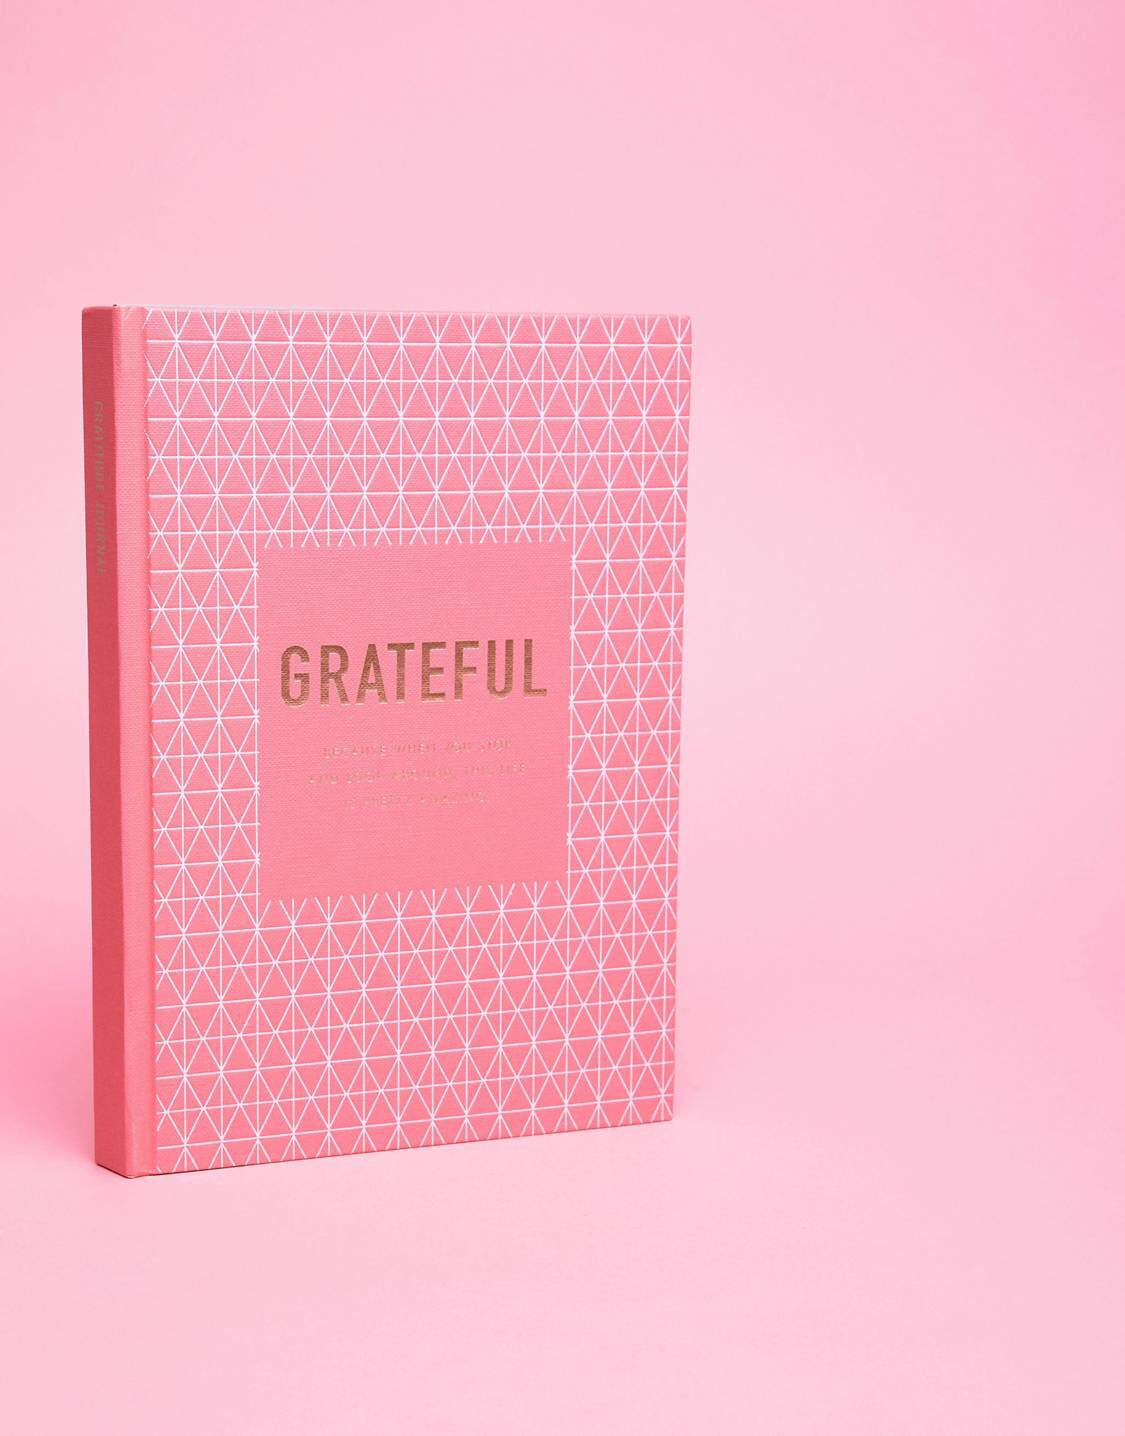 Kikkik grateful inspiration journal items that would make me